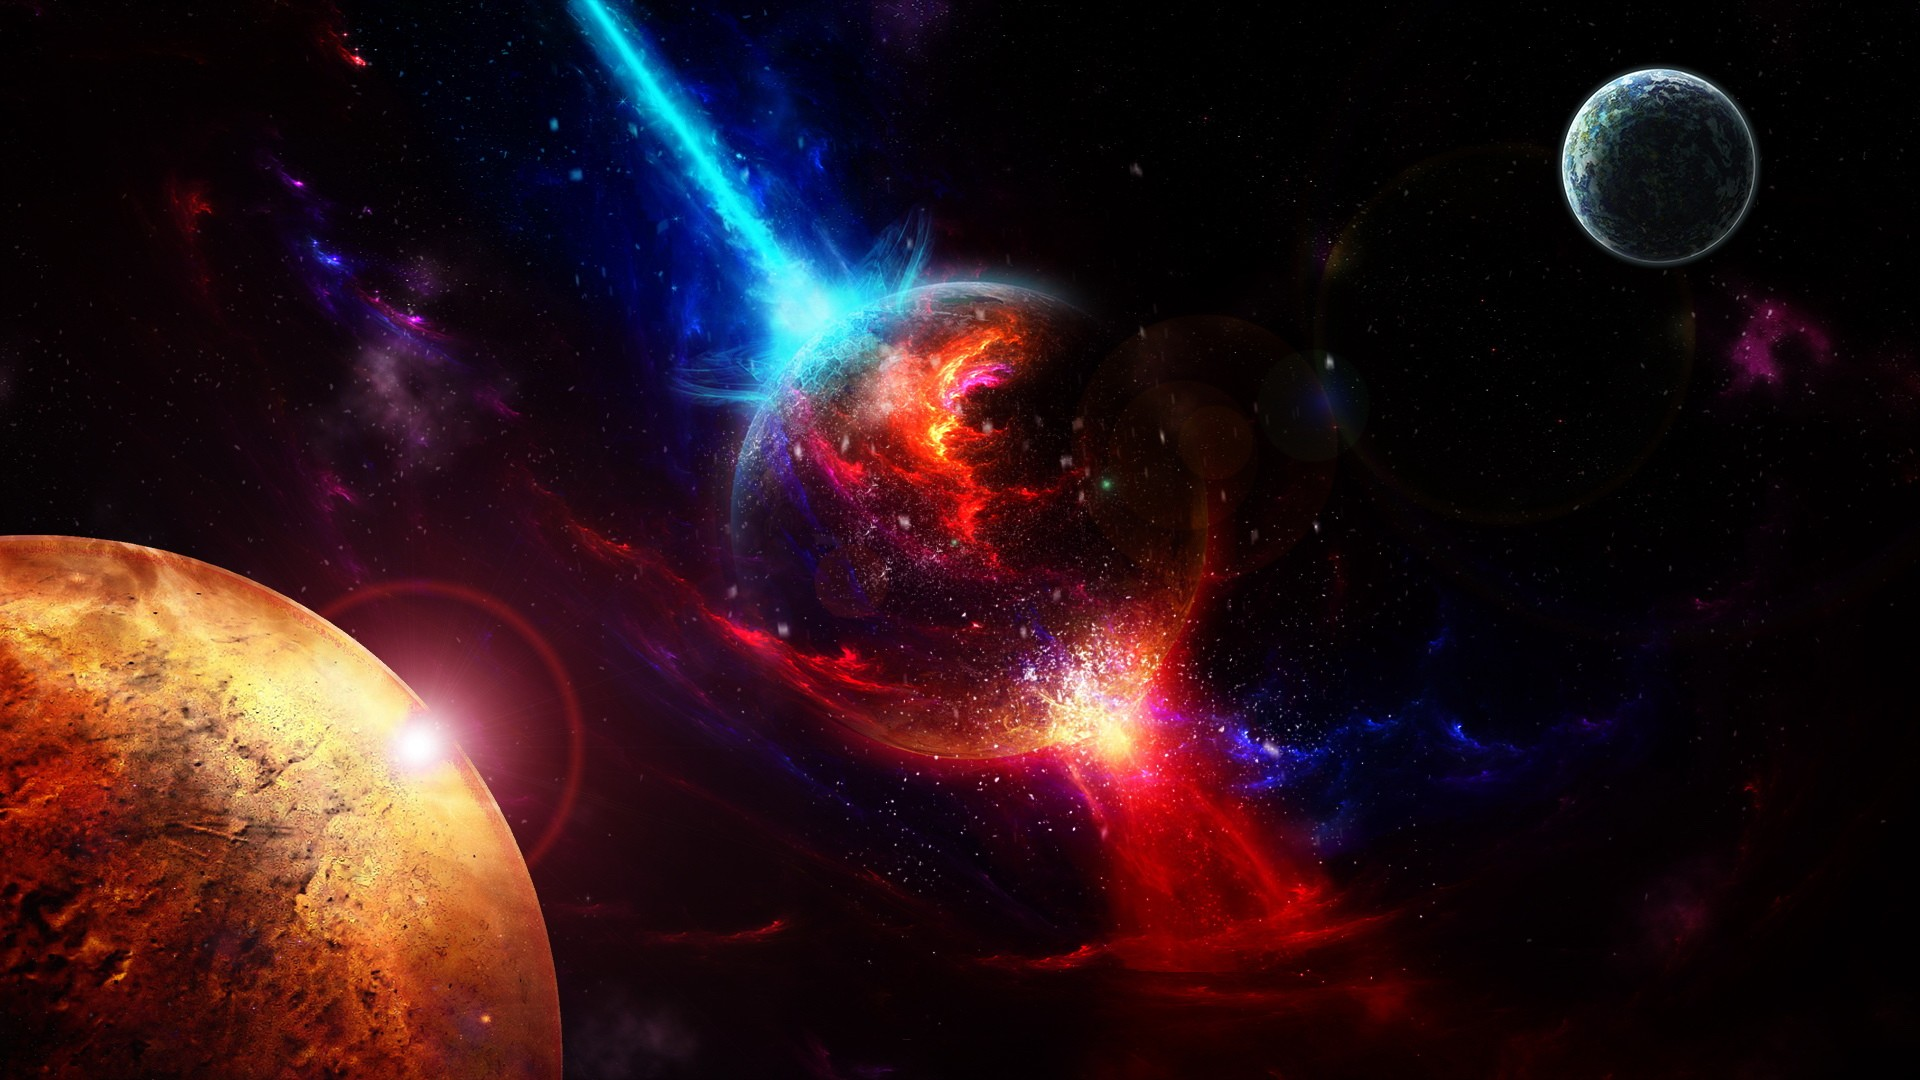 exploding planets wallpapersfor laptops - photo #13